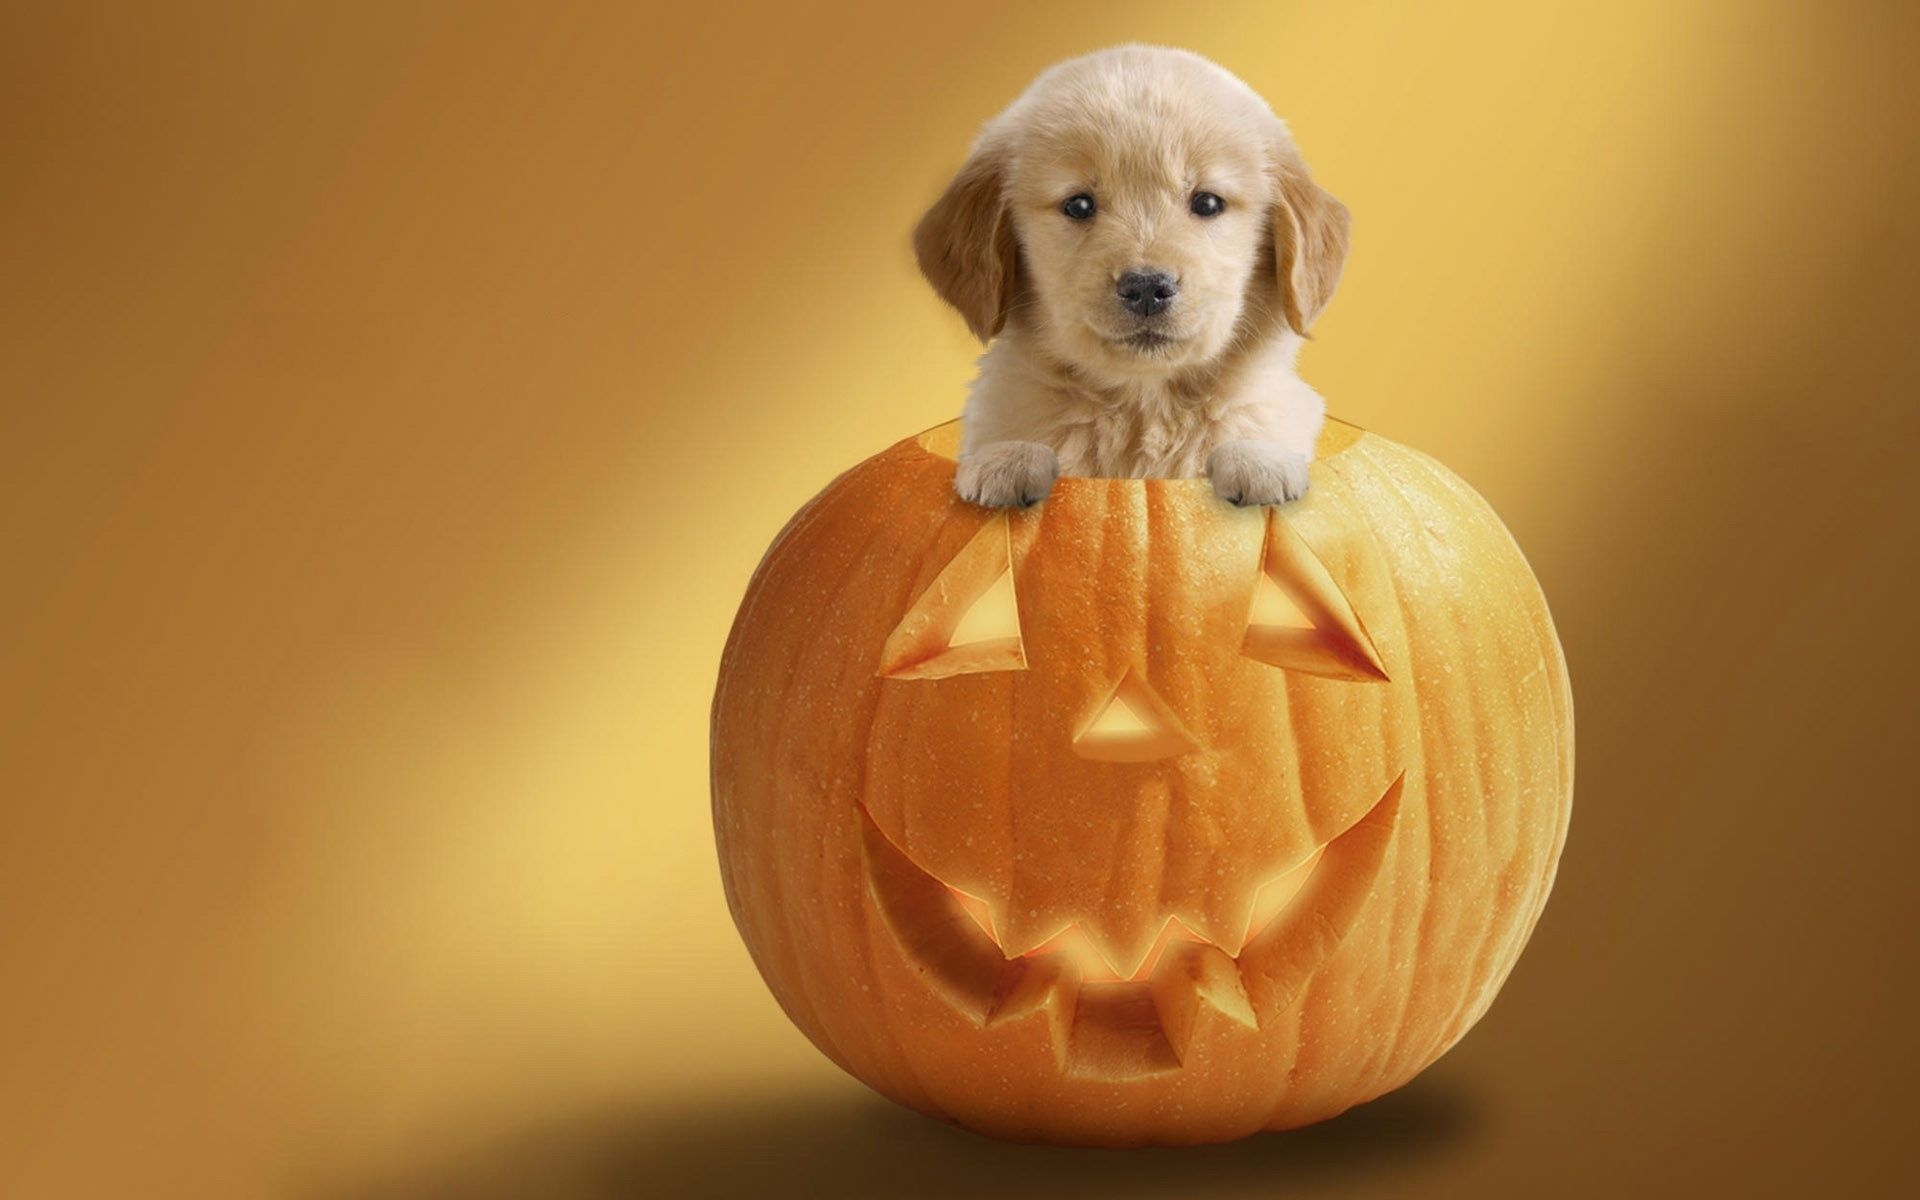 Dog in pumpkin wallpapers and images wallpapers